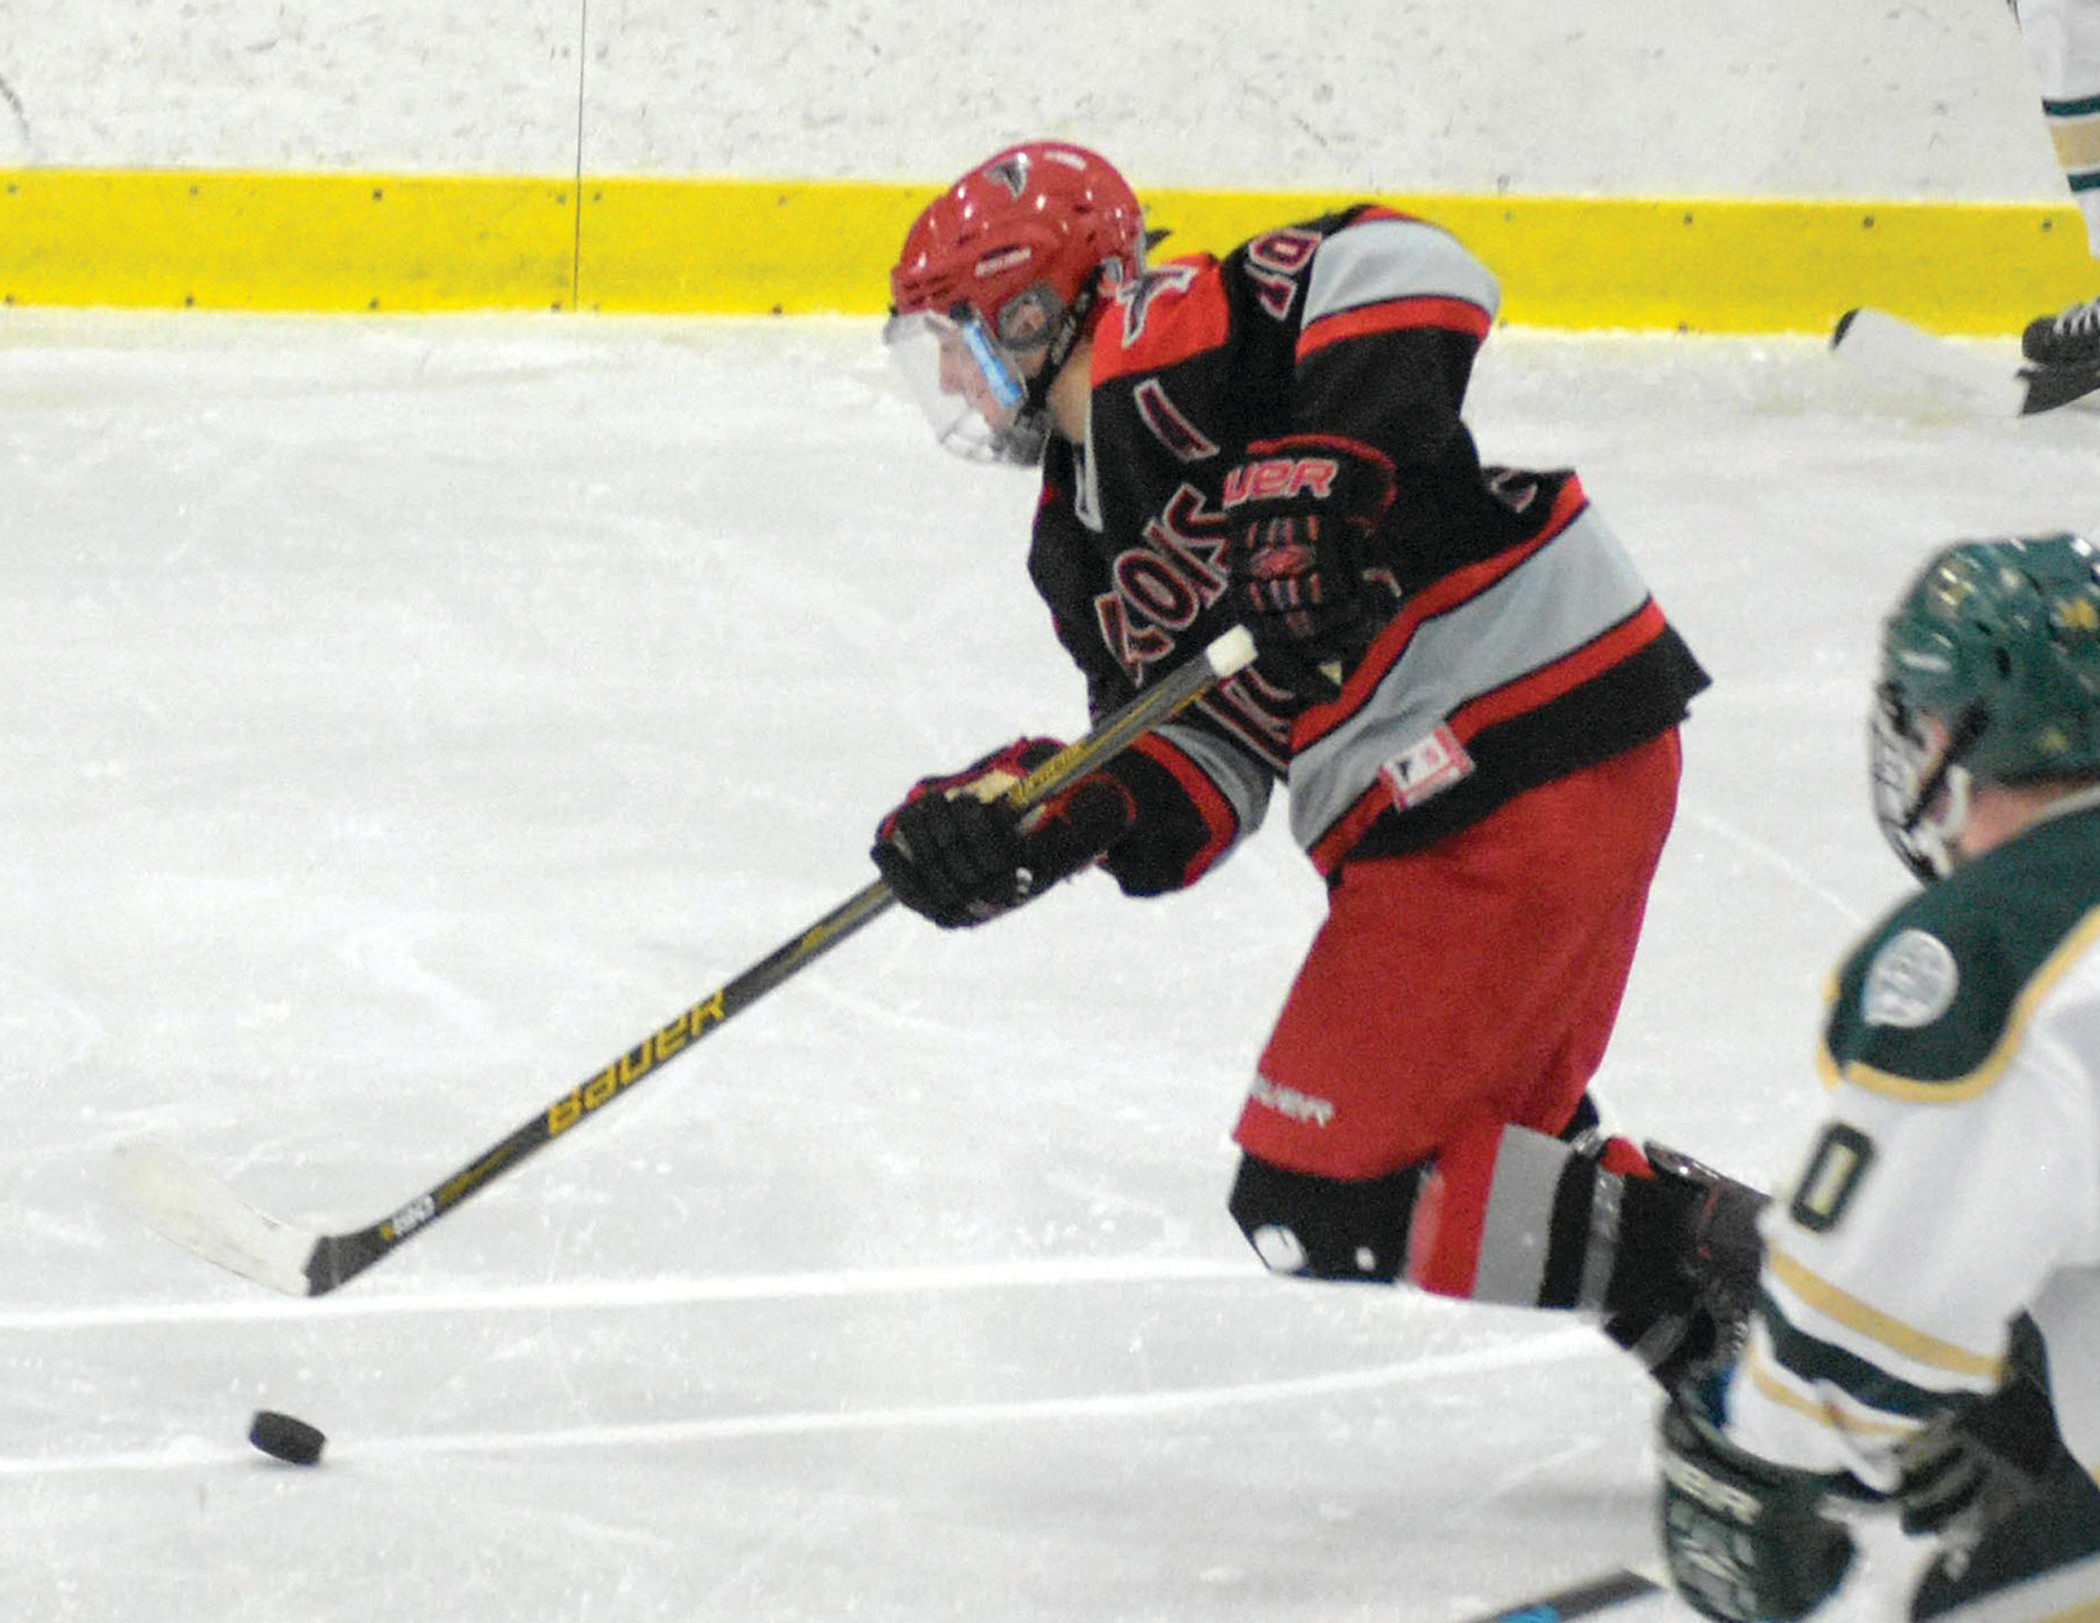 PROVIDING OFFENSE: Justin Neary registered a goal and an assist in Cranston's win over Prout.